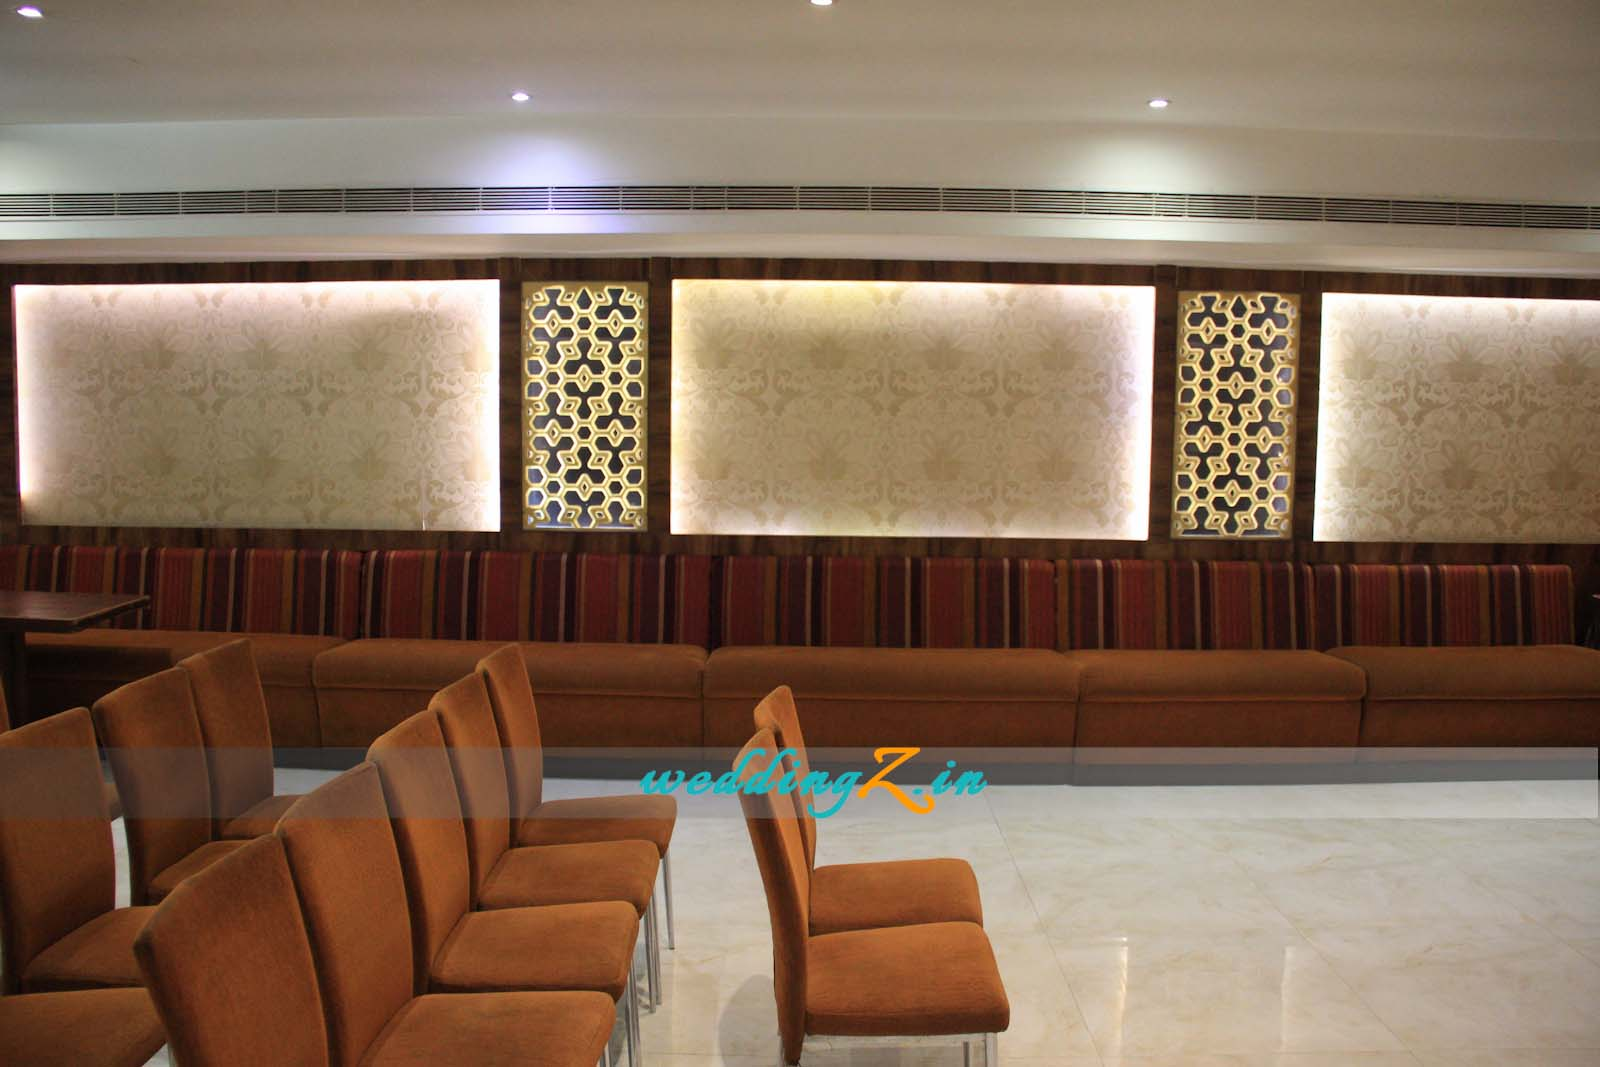 Wall Painting Designs For Hall Rasoi Banquet Malad West Photos Rasoi Banquet Pictures